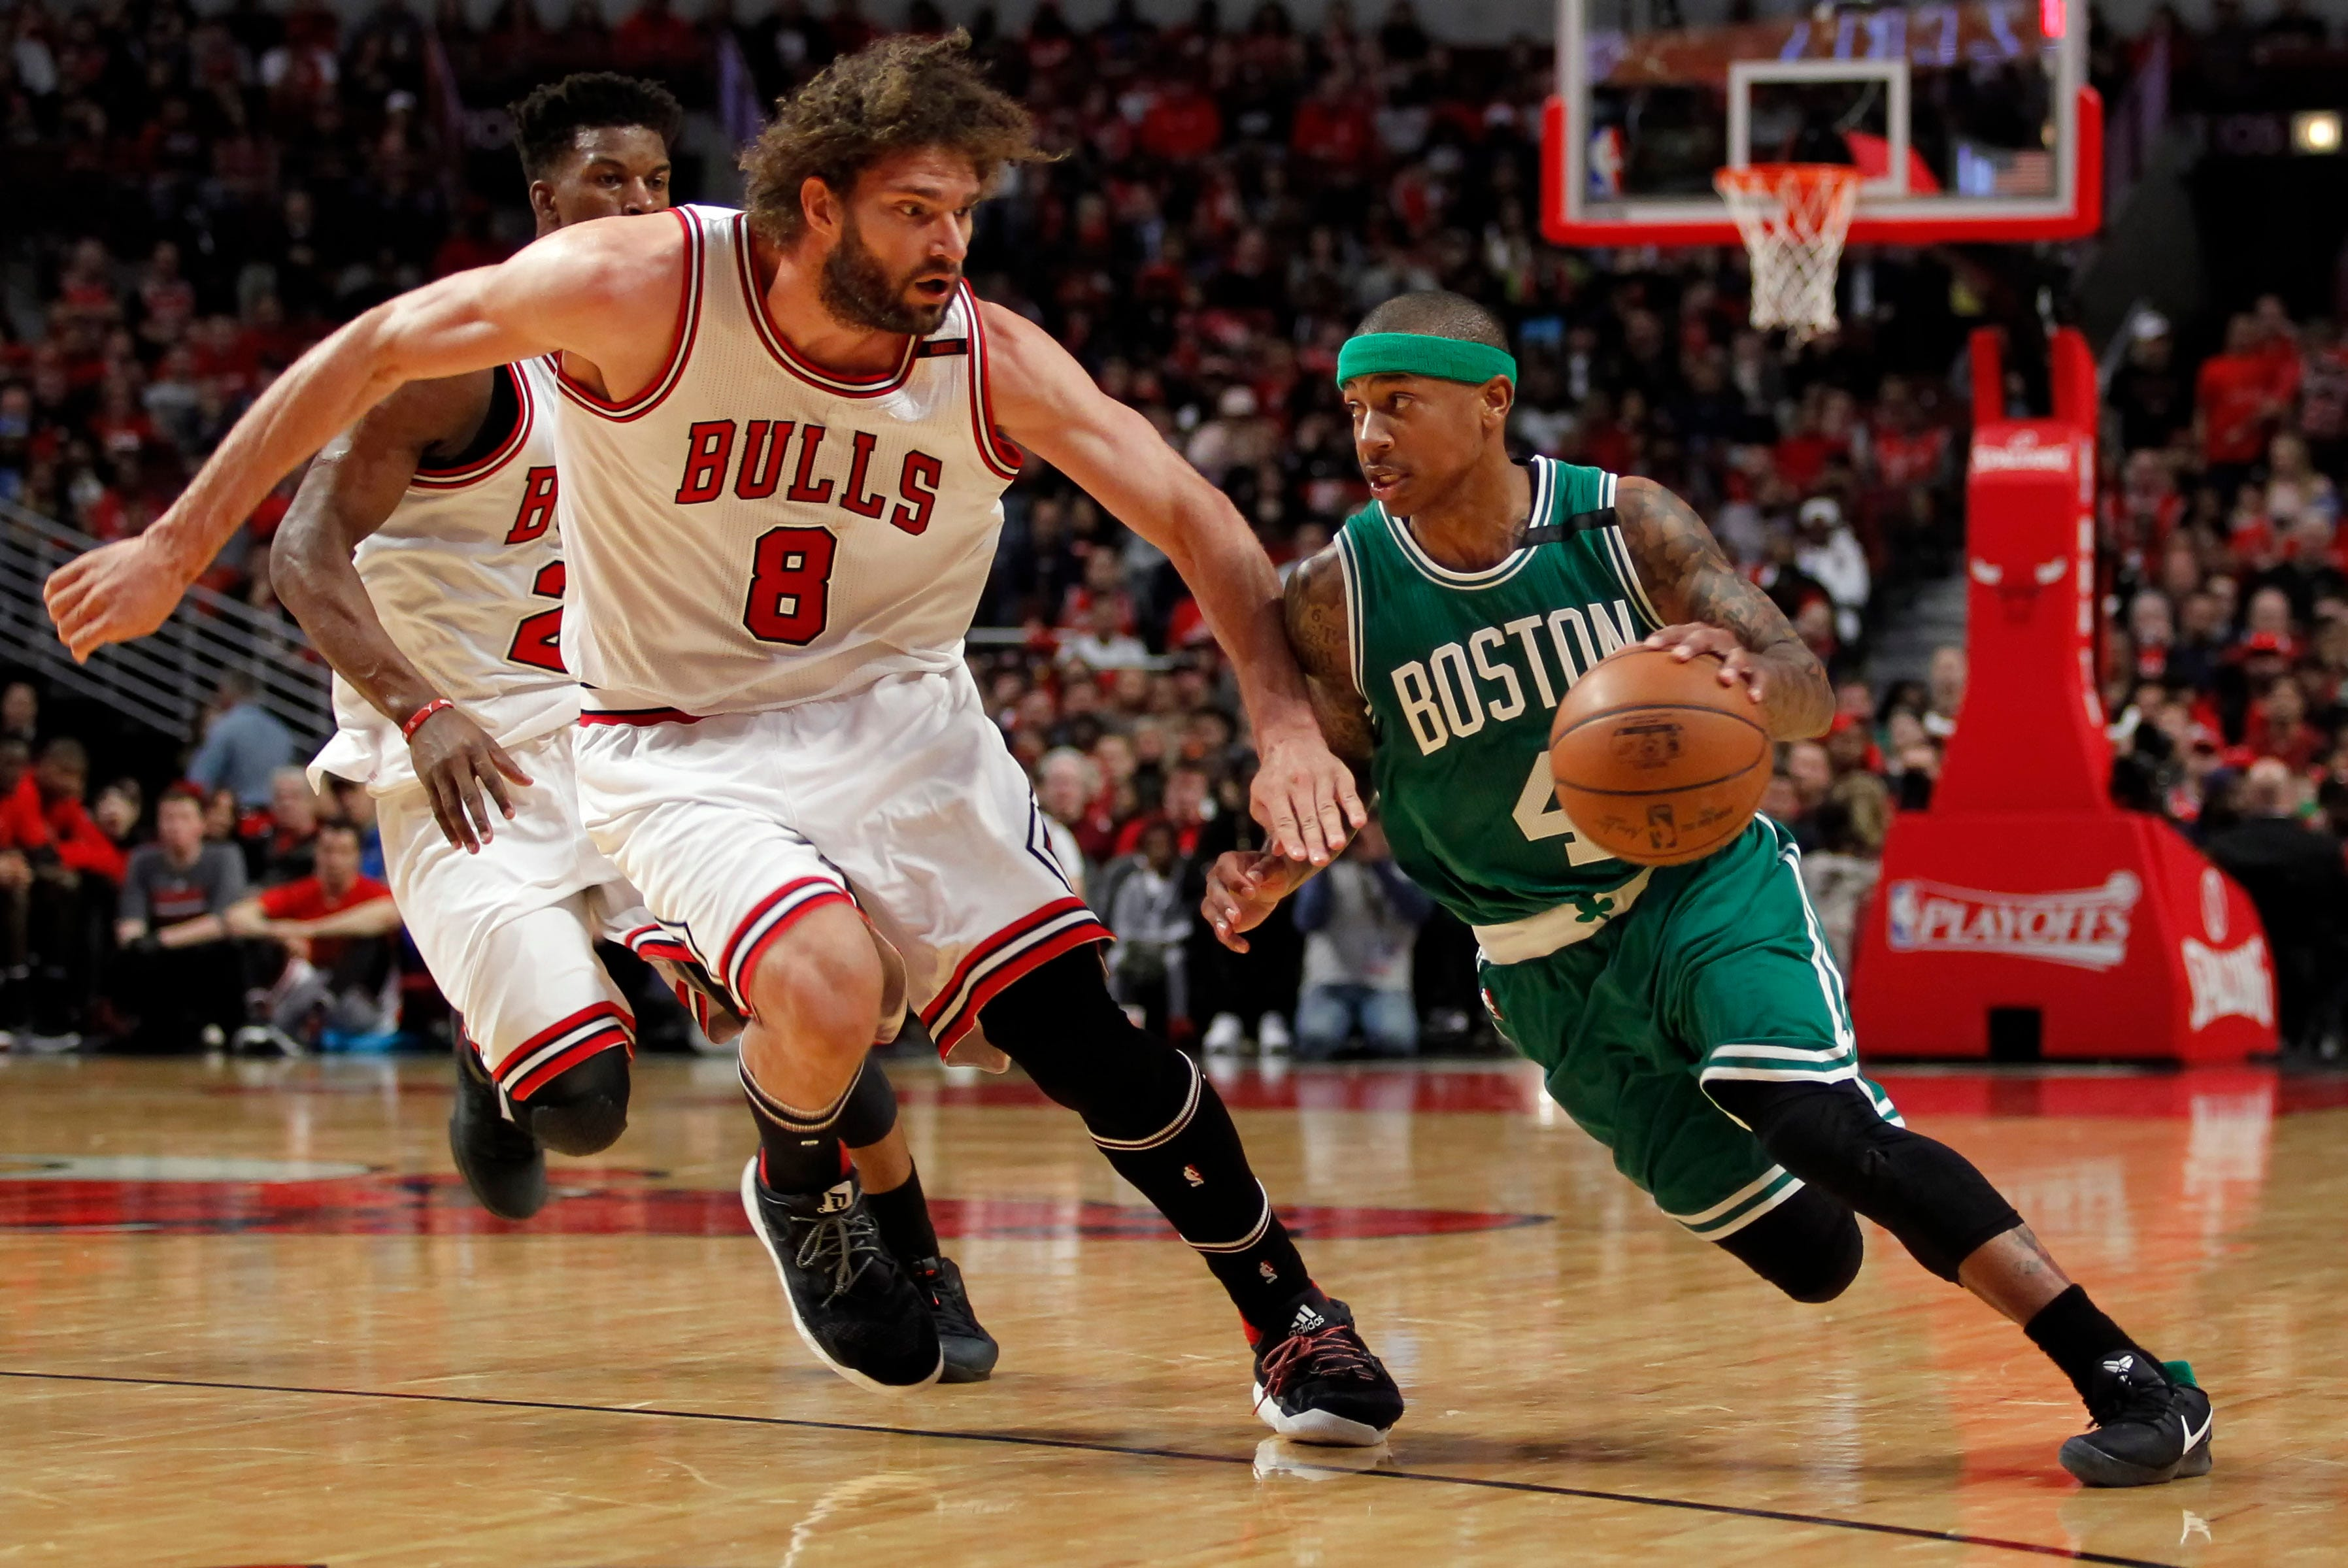 Celtics roll to much-needed Game 3 win over Bulls in Chicago